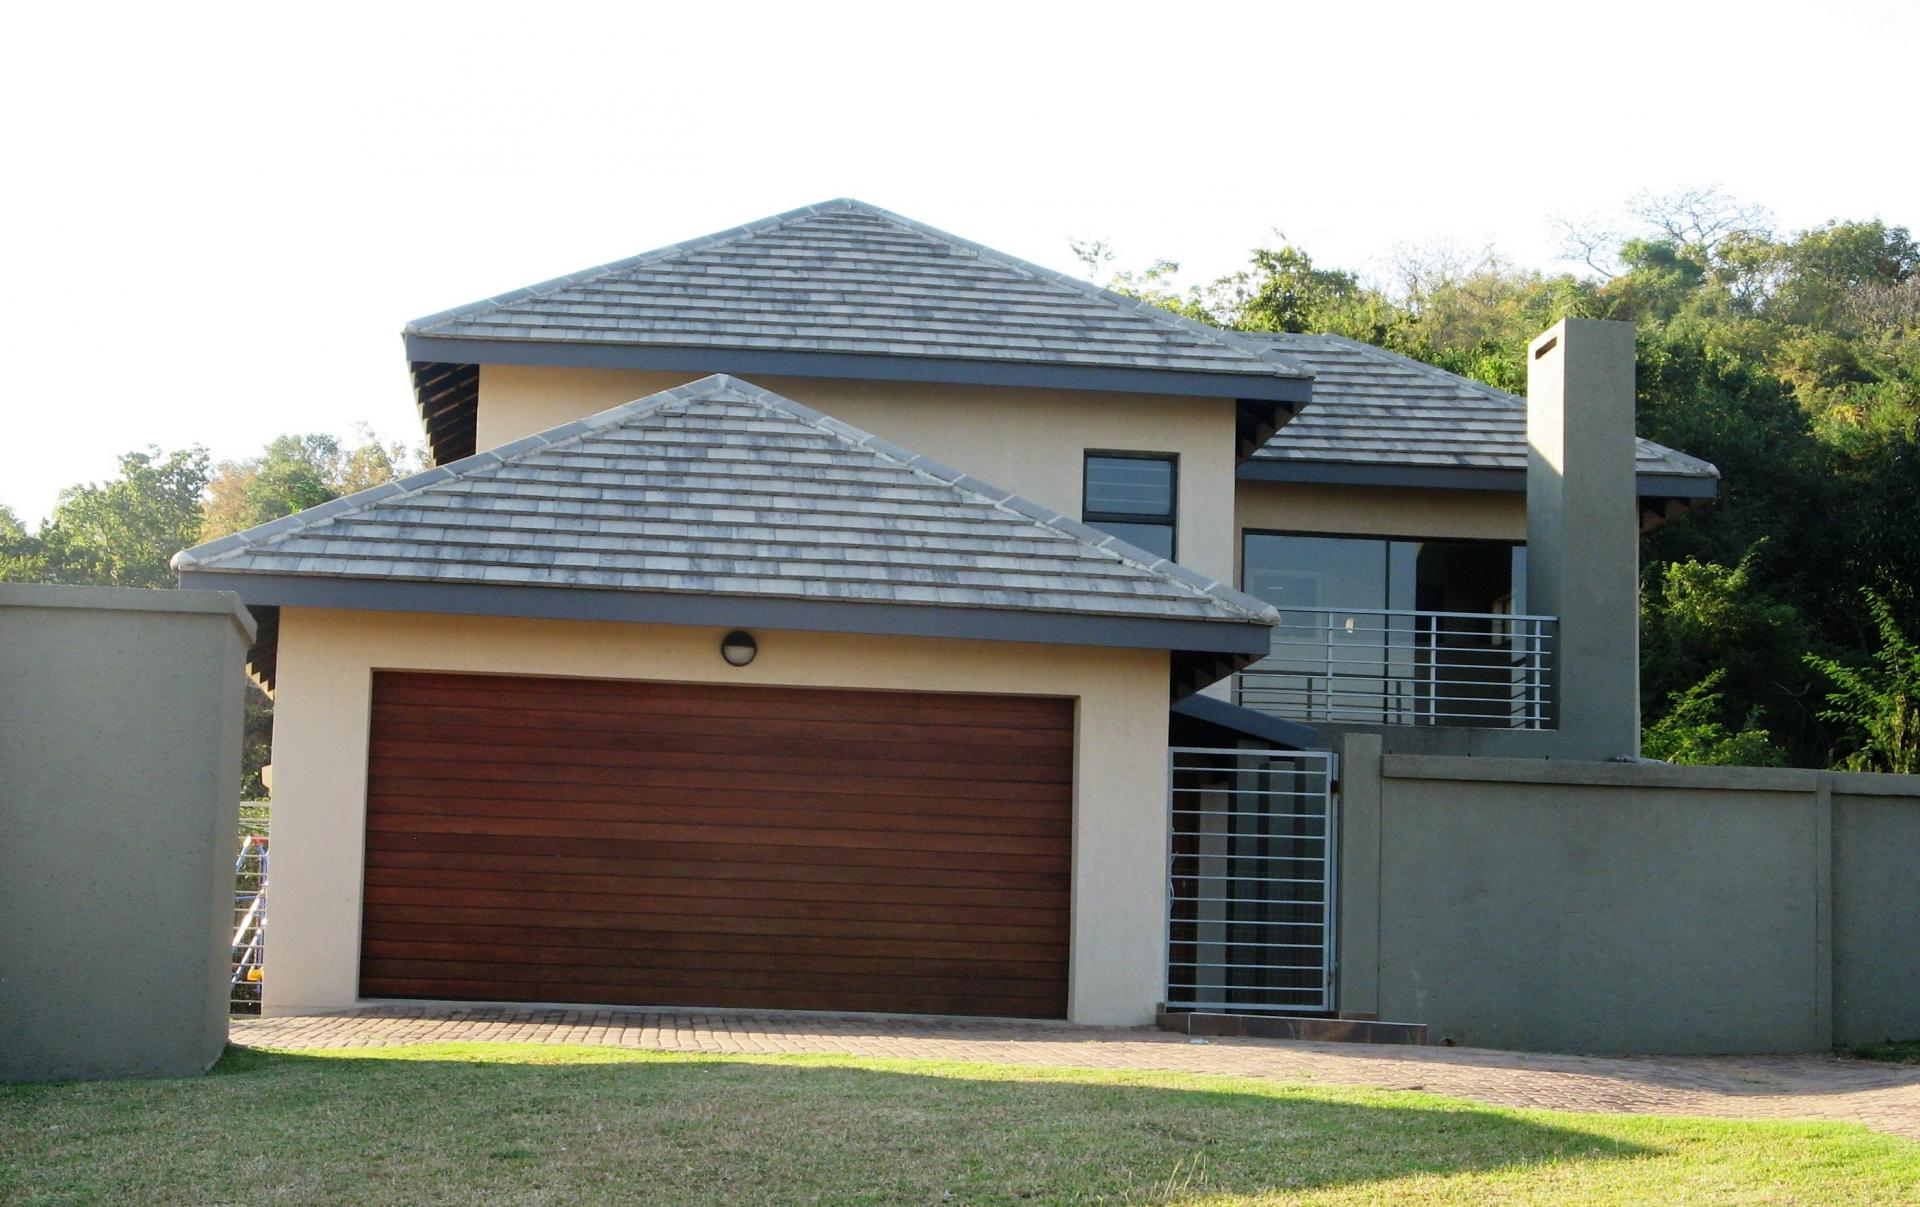 Bedroom house for sale in nelspruit